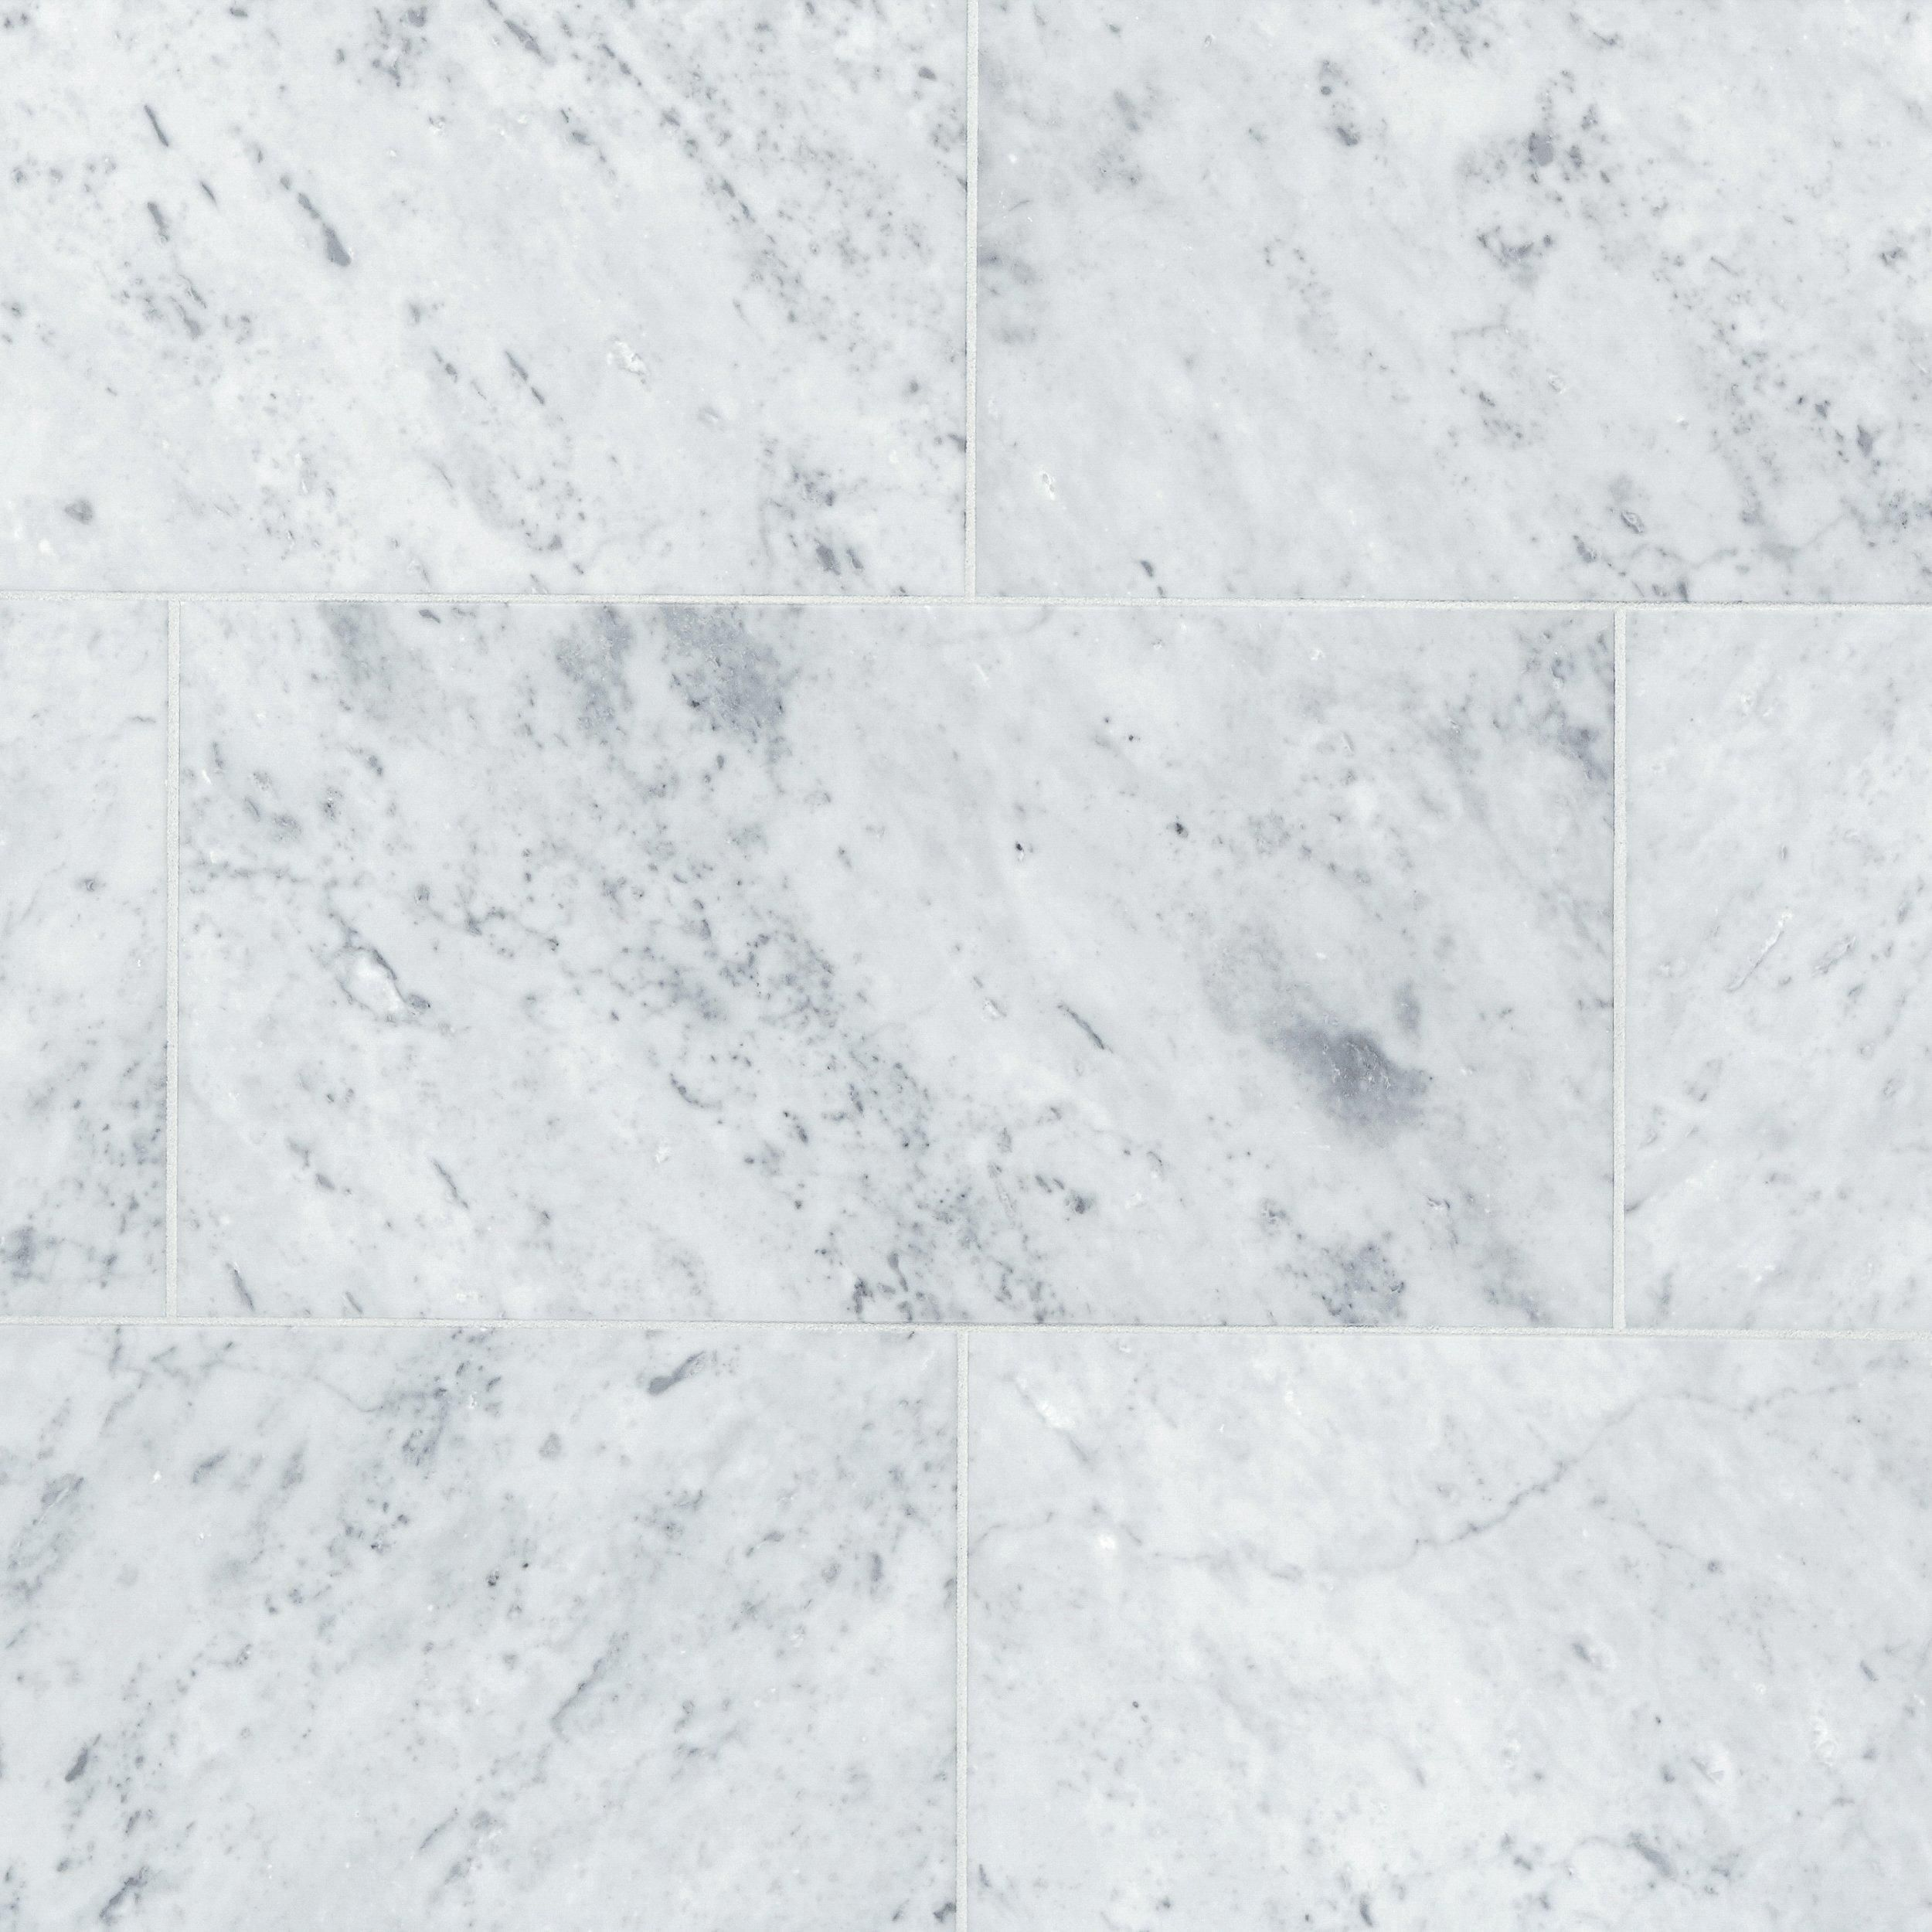 Bianco Carrara Honed Marble Tile Floor Decor Honed Marble Tiles Honed Marble Carrara Marble Tile